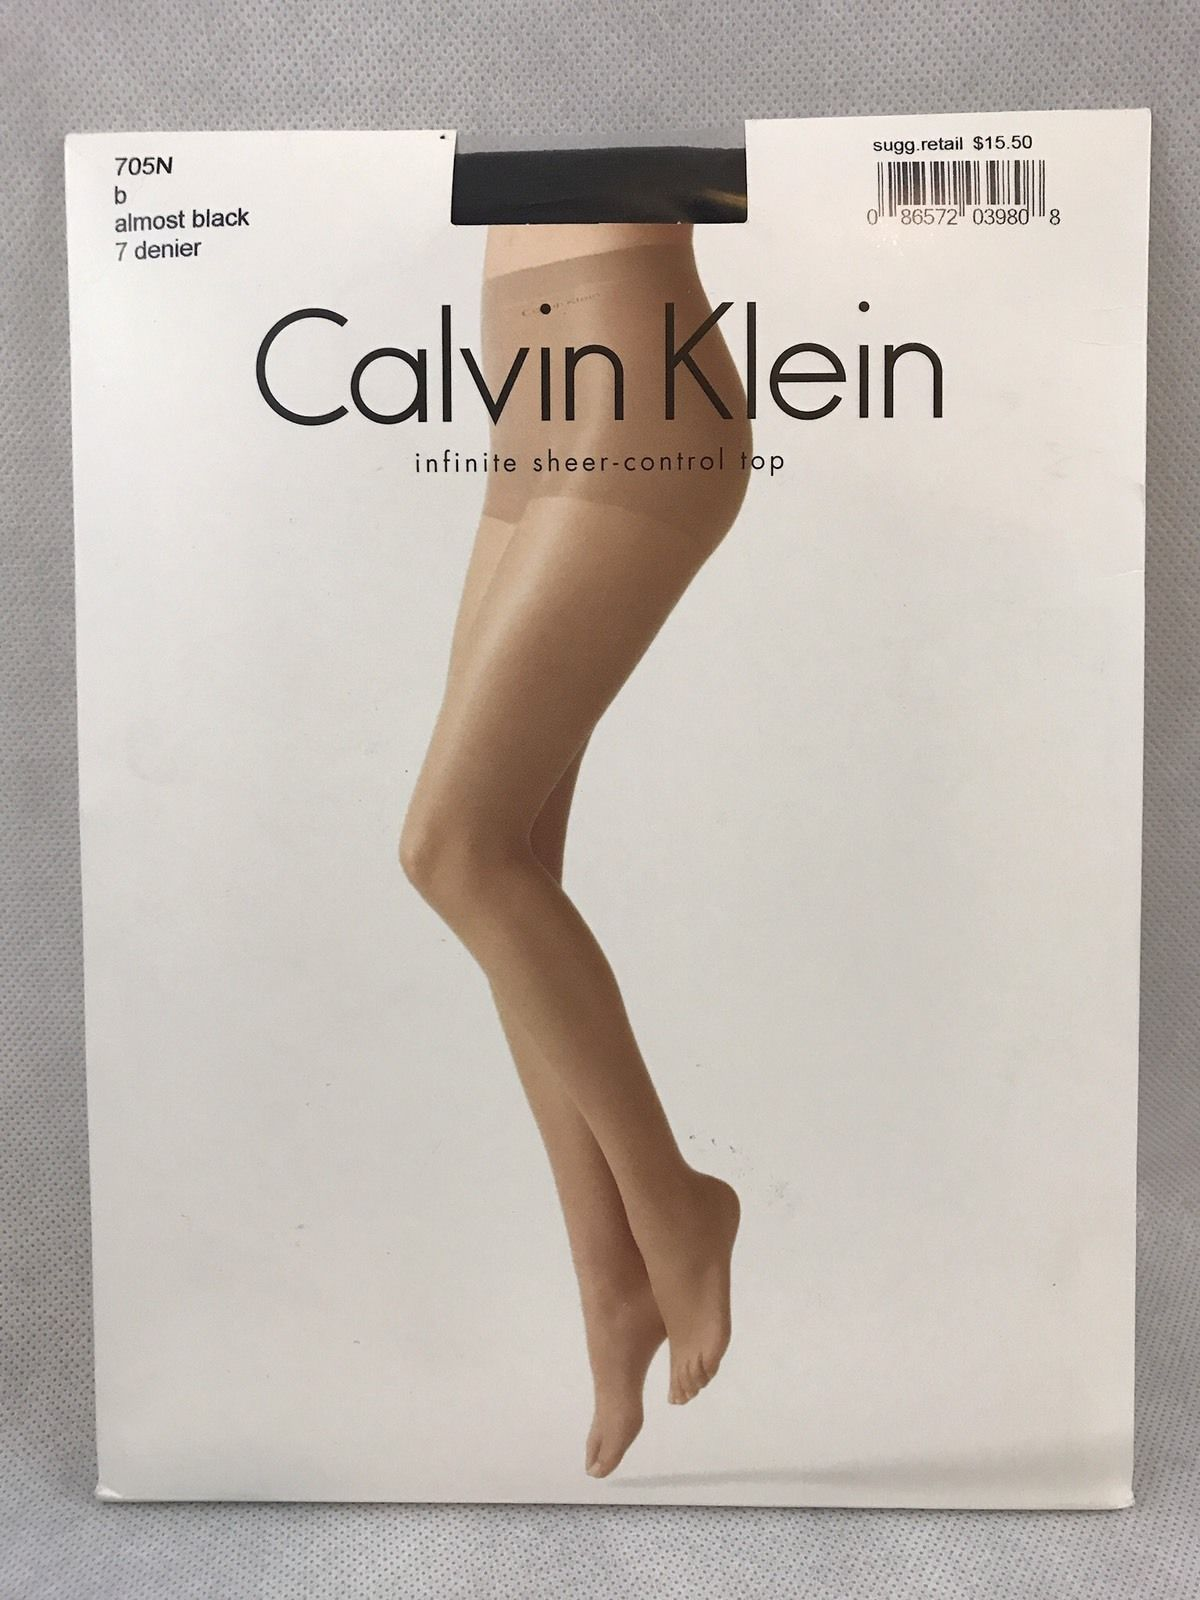 476096fc87296 Calvin Klein Infinite Sheer Control Top Pantyhose Almost Black Size B |  Clothing, Shoes & Accessories, Women's Clothing, Hosiery & Socks | eBay!